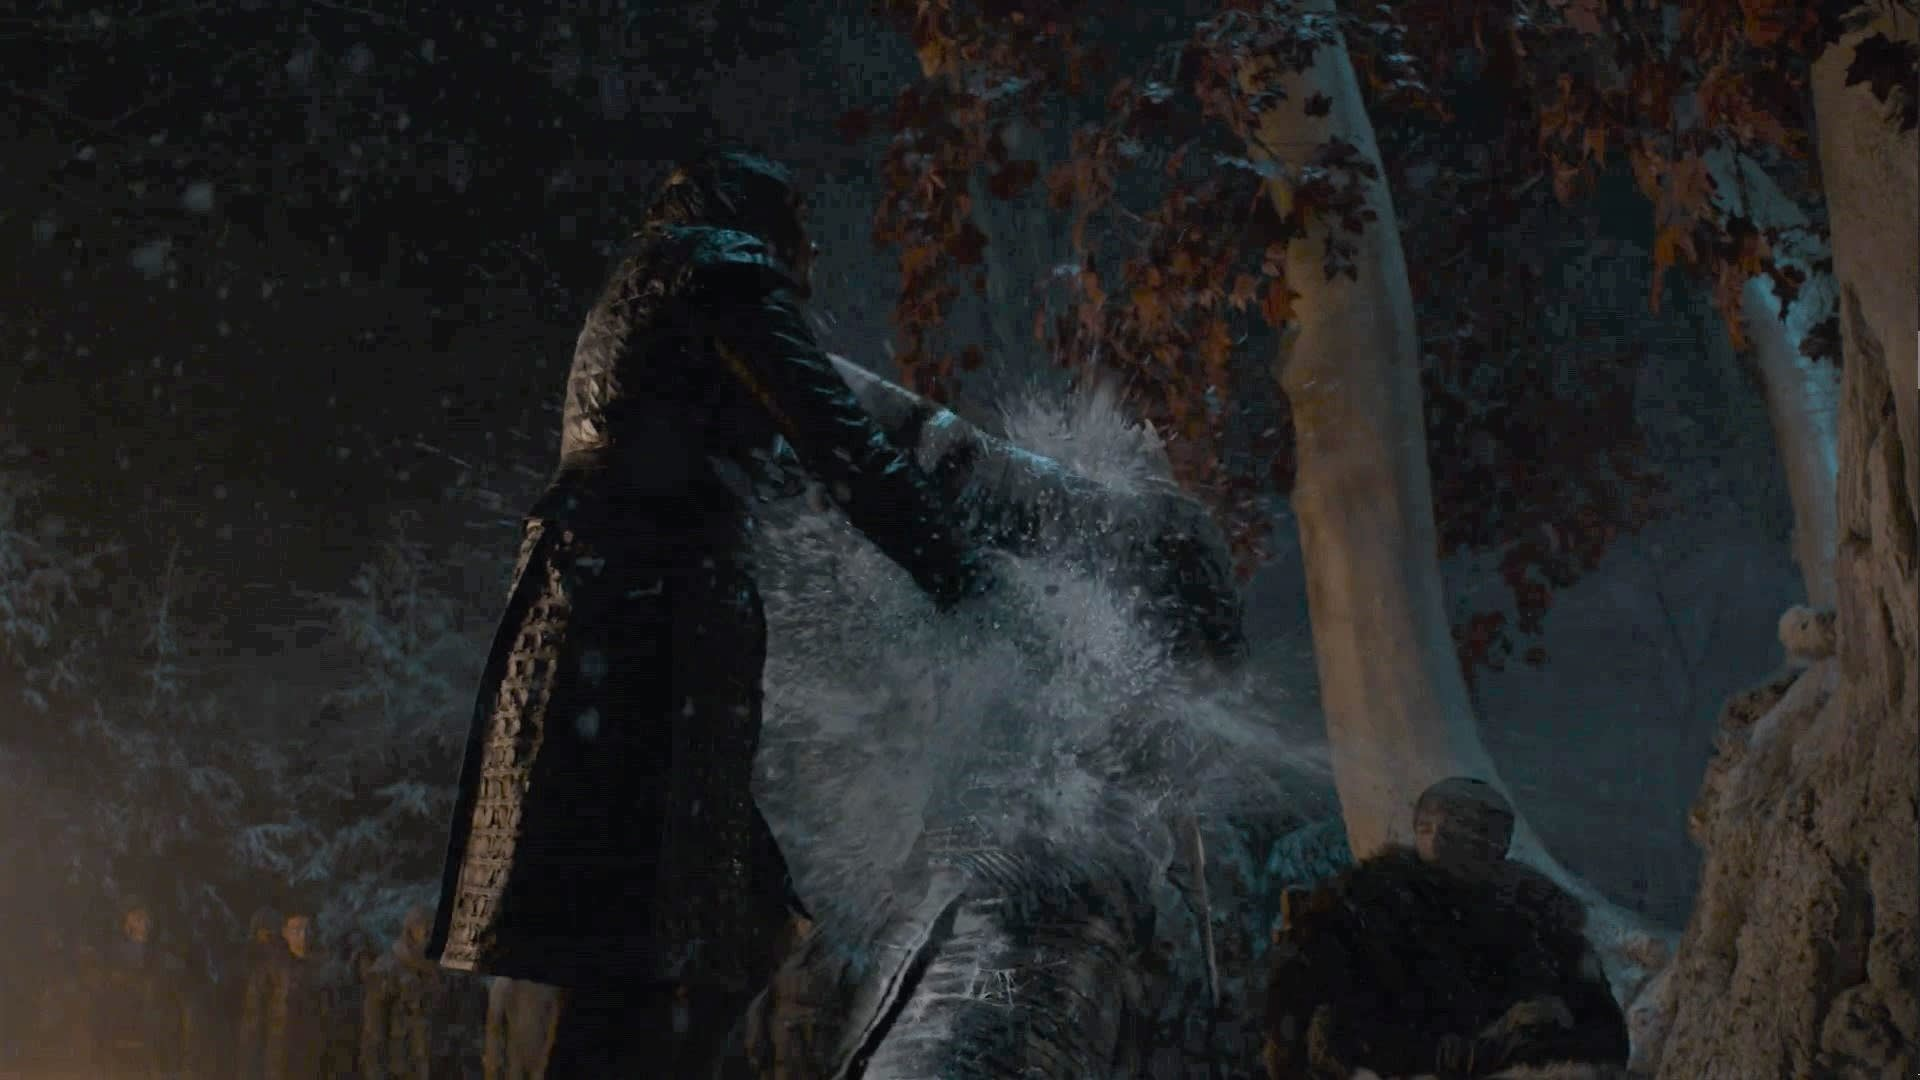 Tv Moments, When Arya attempts to murder the Night King in GOT, he turns around causing her to drop the dagger. However, she catches it with her other hand and stabs him.